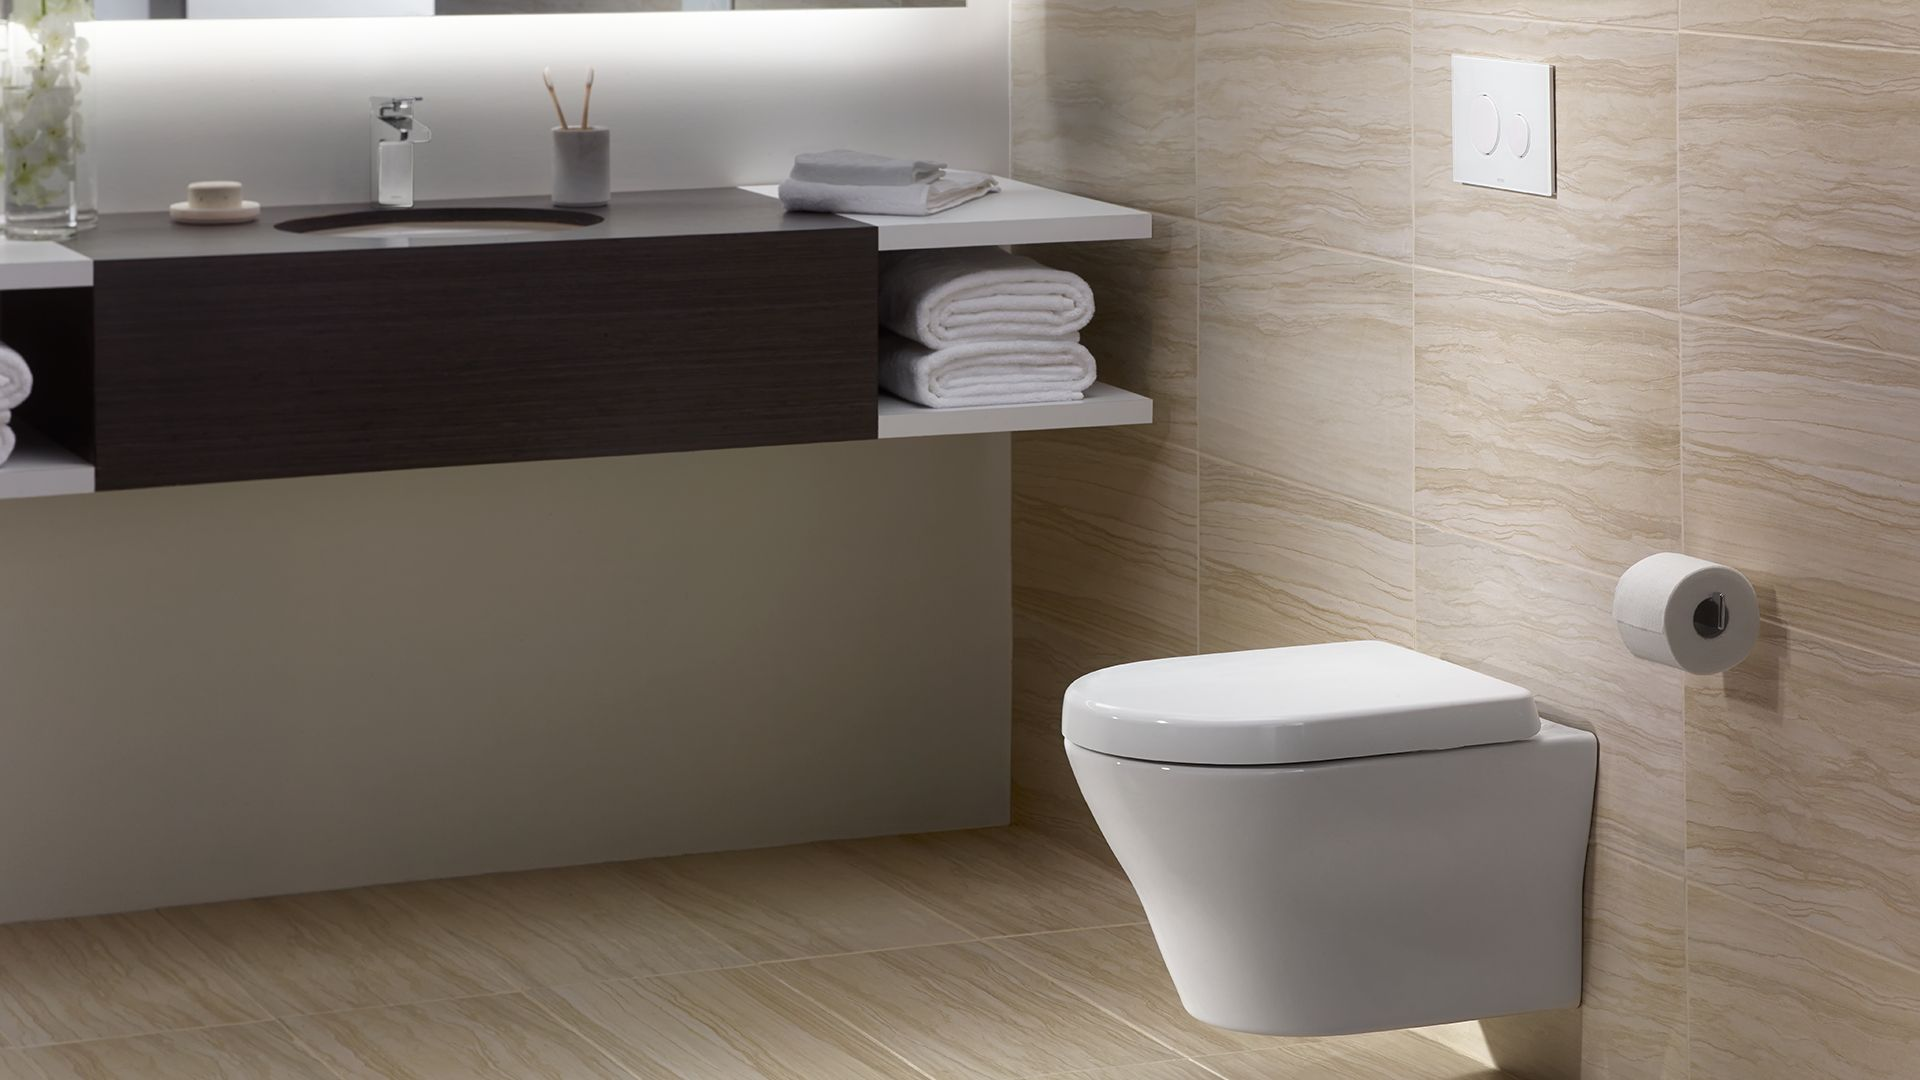 Mh wall hung dual flush toilet gpf 0 9 gpf d shaped for Flush with the wall